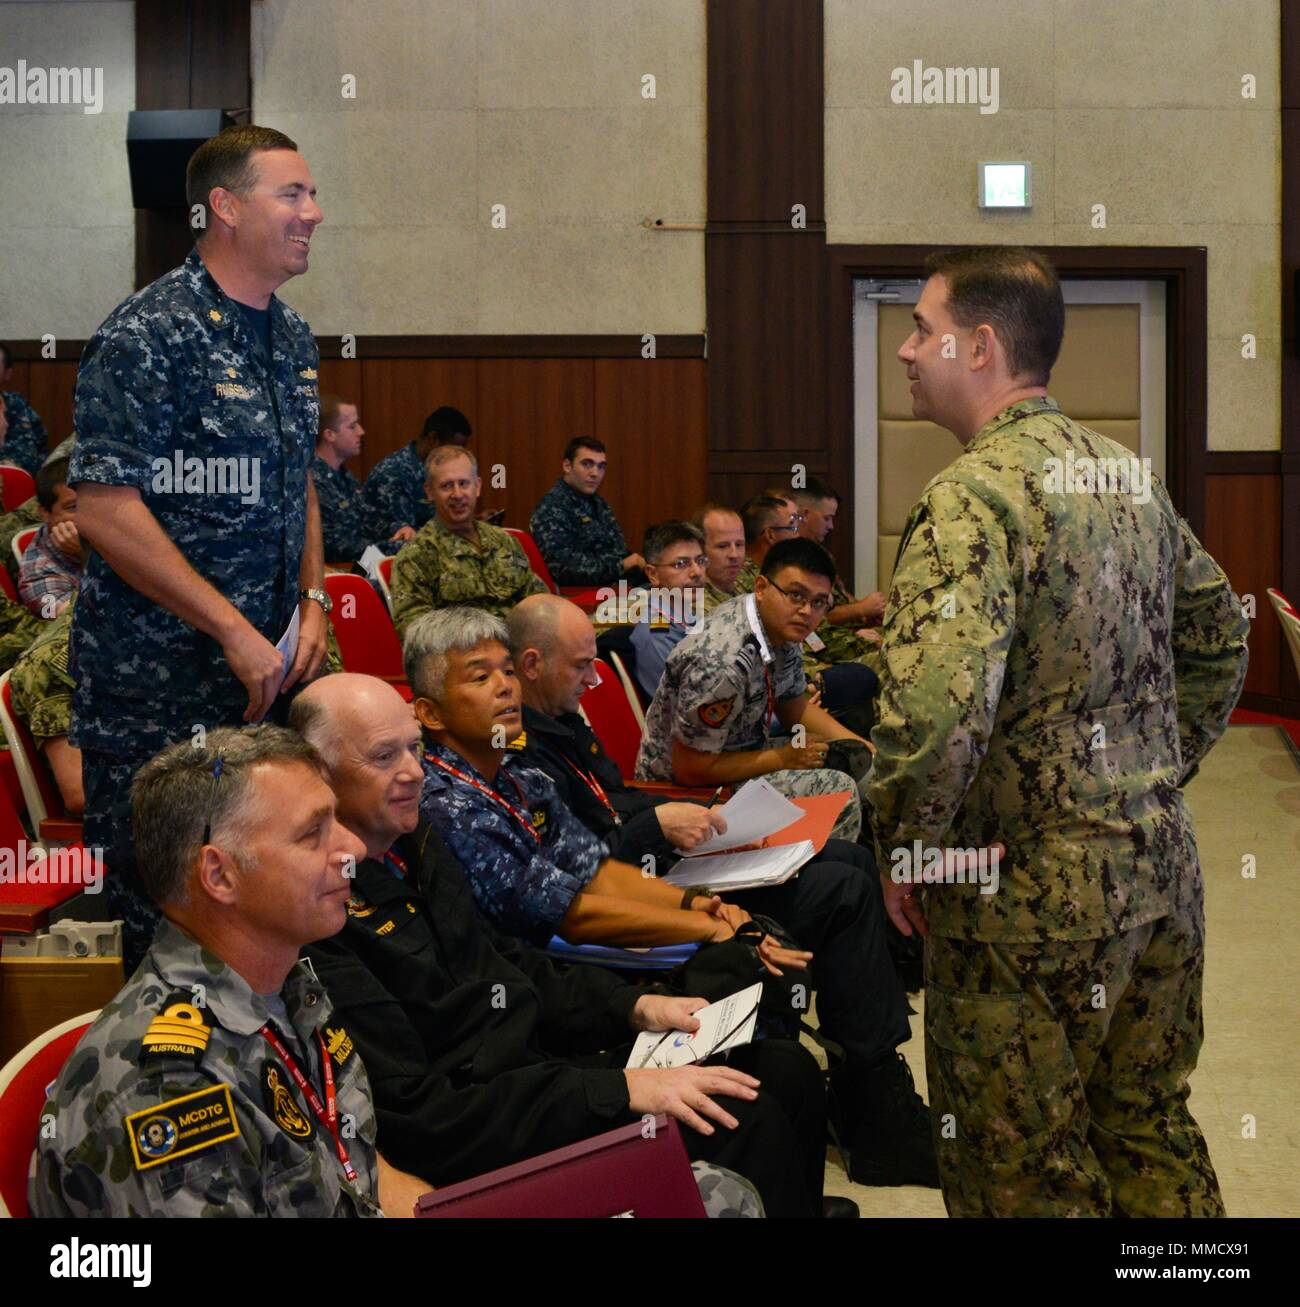 171012-N-TB148-007 BUSAN, Republic of Korea (Oct. 12, 2017) Rear Adm. Brad Cooper, commander, U.S. Naval Forces Korea (CNFK), speaks with LCDR William A. Russell, commanding officer aboard the Avenger-class mine countermeasures ship USS Chief (MCM 14), at the fourth annual Mine Countermeasures (MCM) Symposium. The symposium's purpose is to enhance interoperability, coordination and training in mine countermeasures capabilities between U.S., ROK, and UNC SS forces. (U.S. Navy photo by Mass Communication Specialist Seaman William Carlisle) Stock Photo